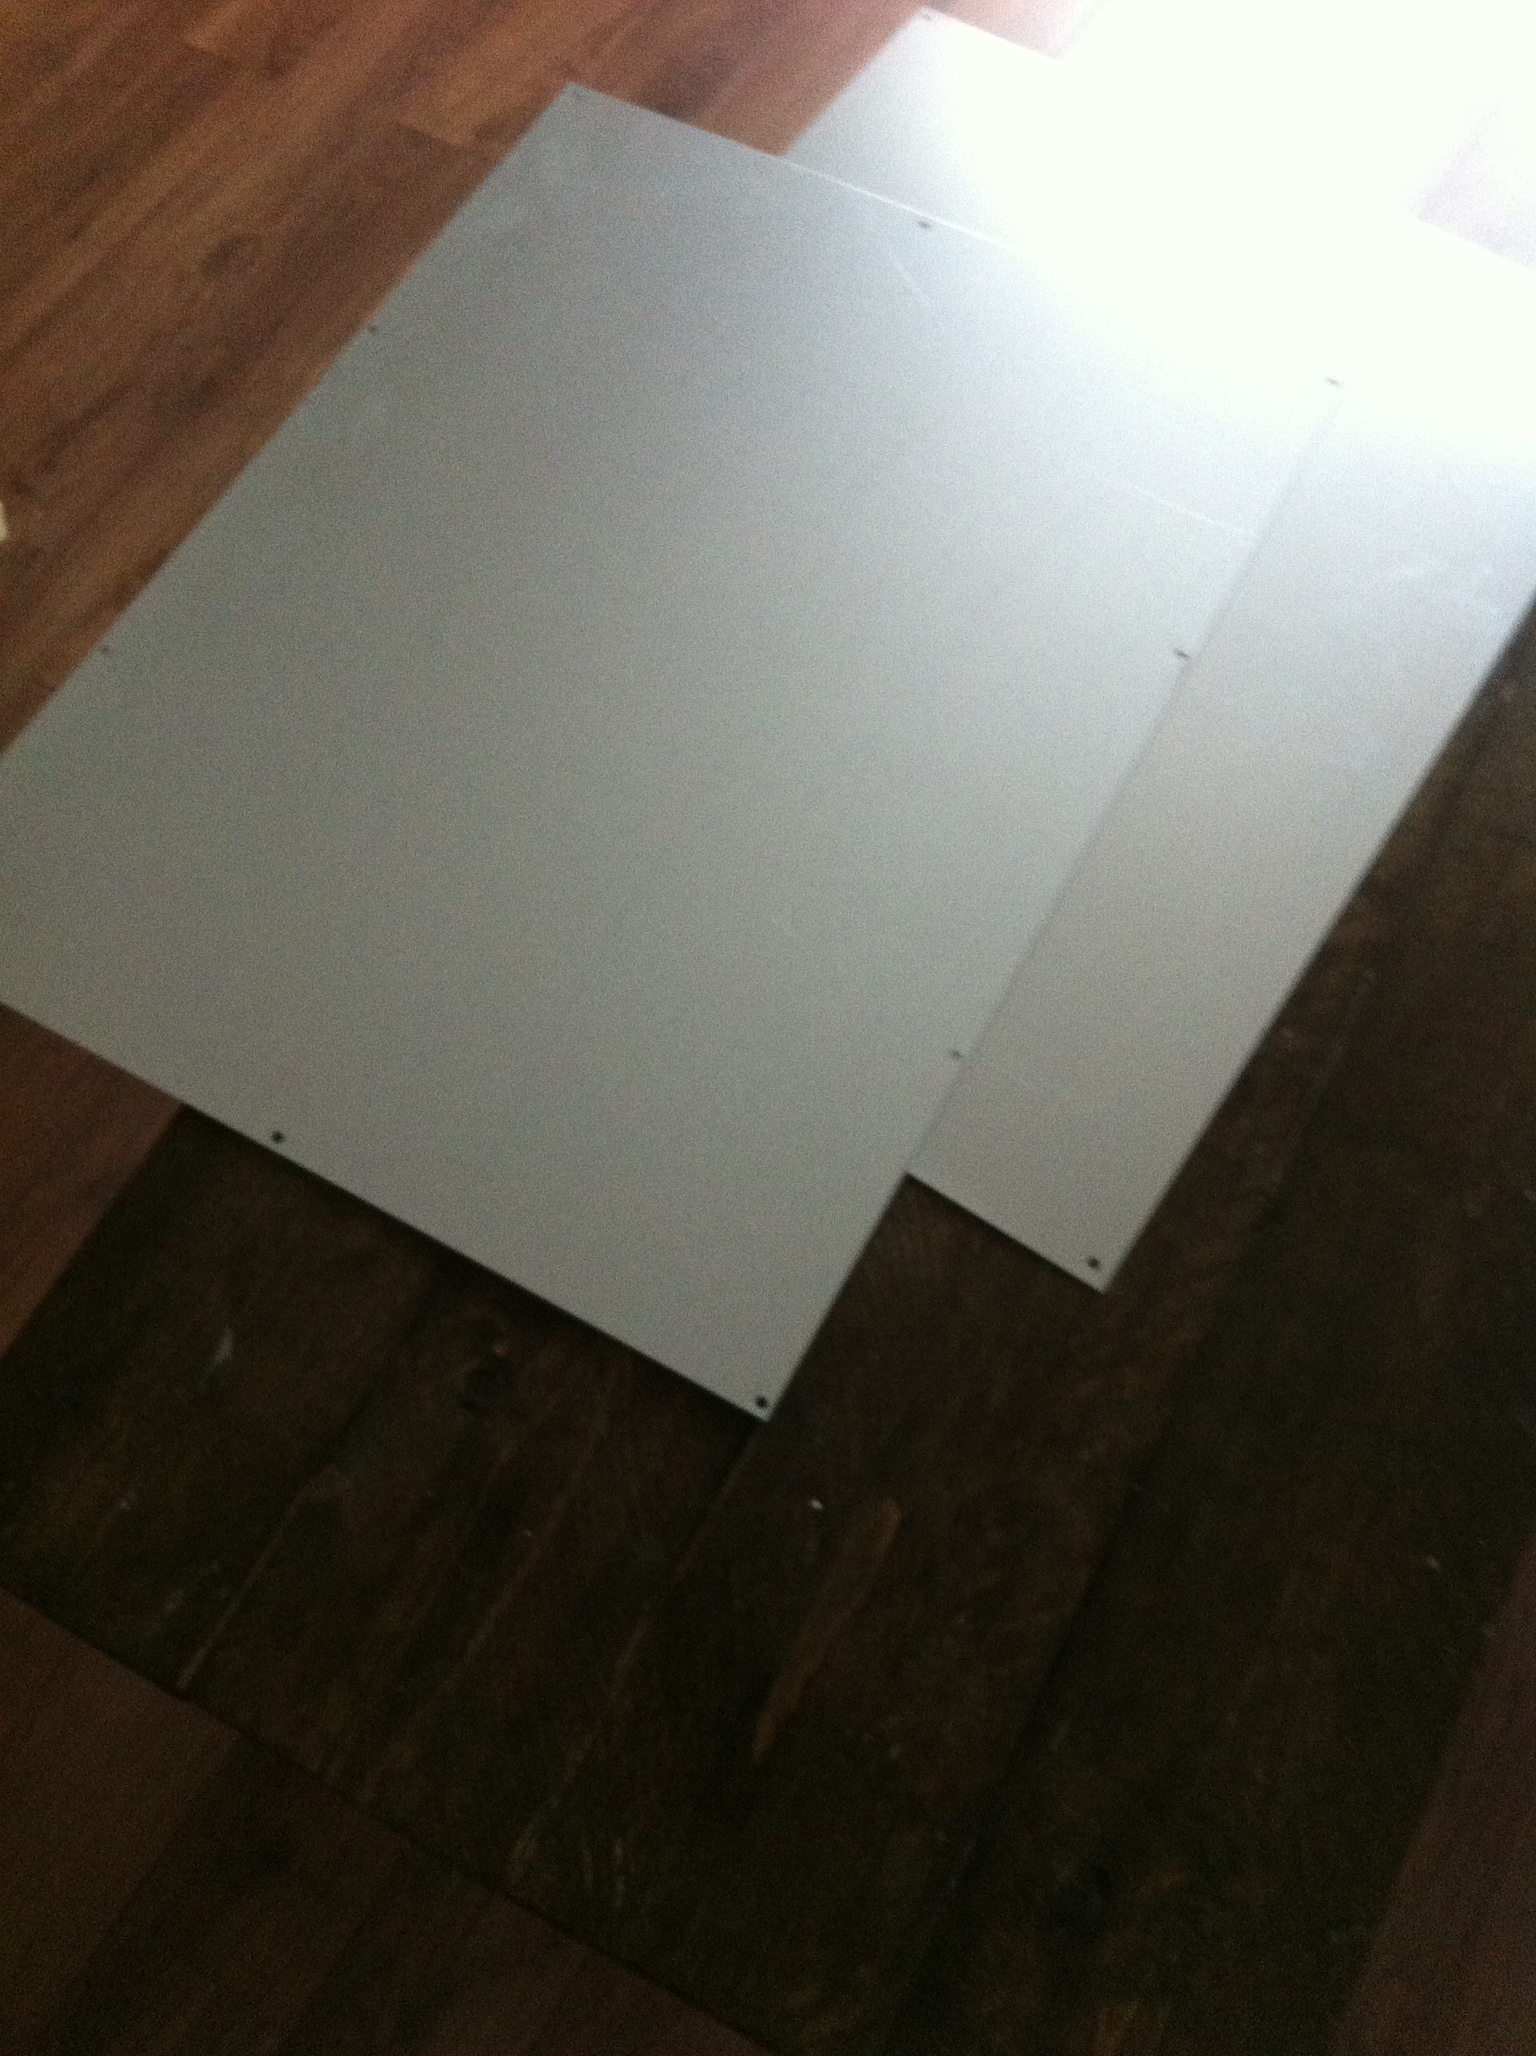 Picture of Cut or Find Some Galavanised Steel or Magnetic Metal You Wish.